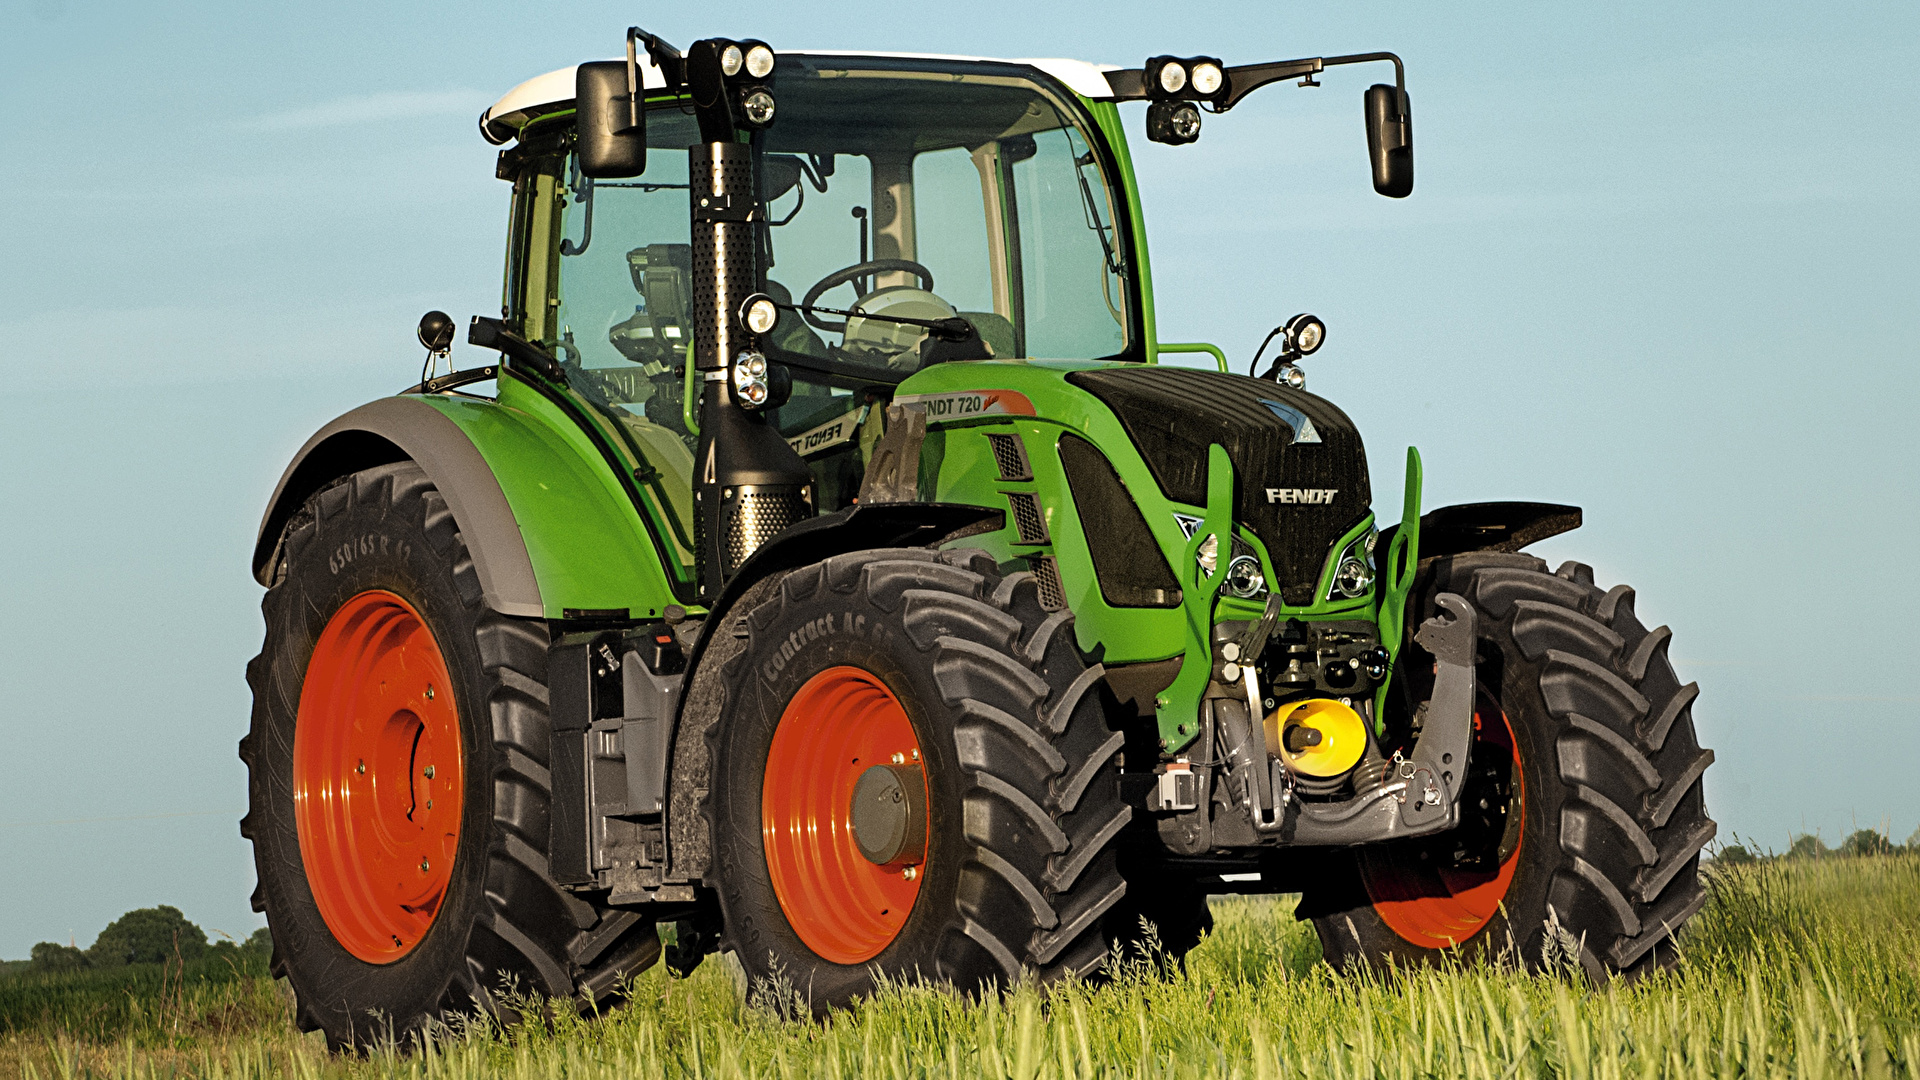 Desktop Wallpapers Agricultural machinery Tractor 2014 16 1920x1080 1920x1080